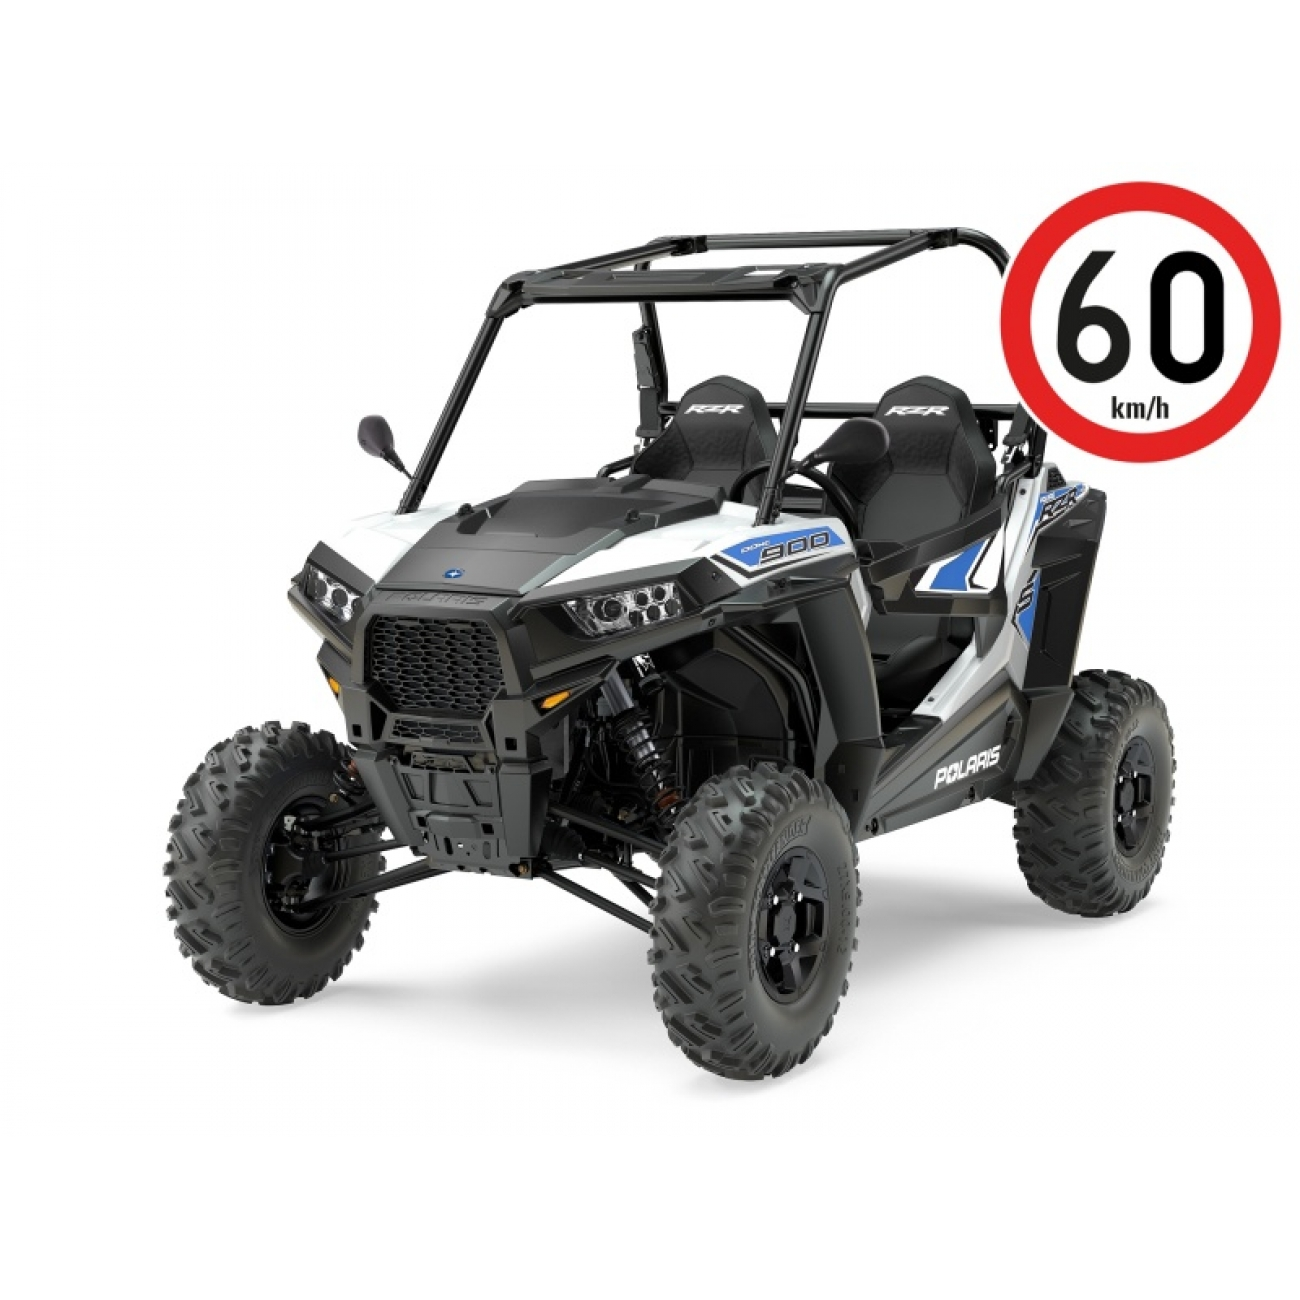 100 mini utv terios atv utv atv for sale off road. Black Bedroom Furniture Sets. Home Design Ideas